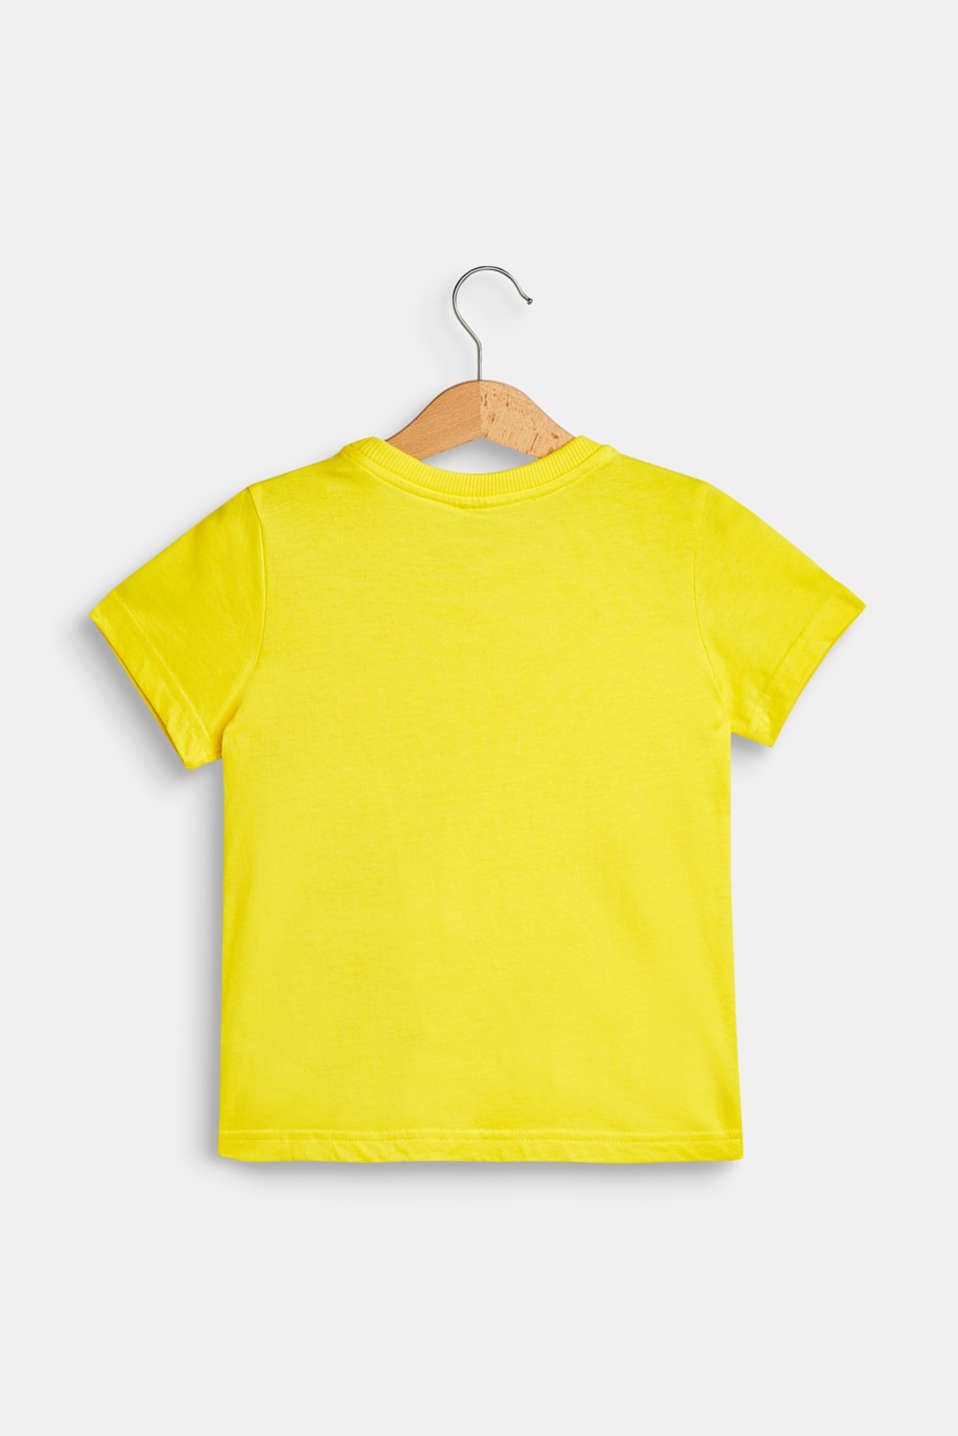 T-shirt with a motif pocket, 100% cotton, BRIGHT YELLOW, detail image number 1